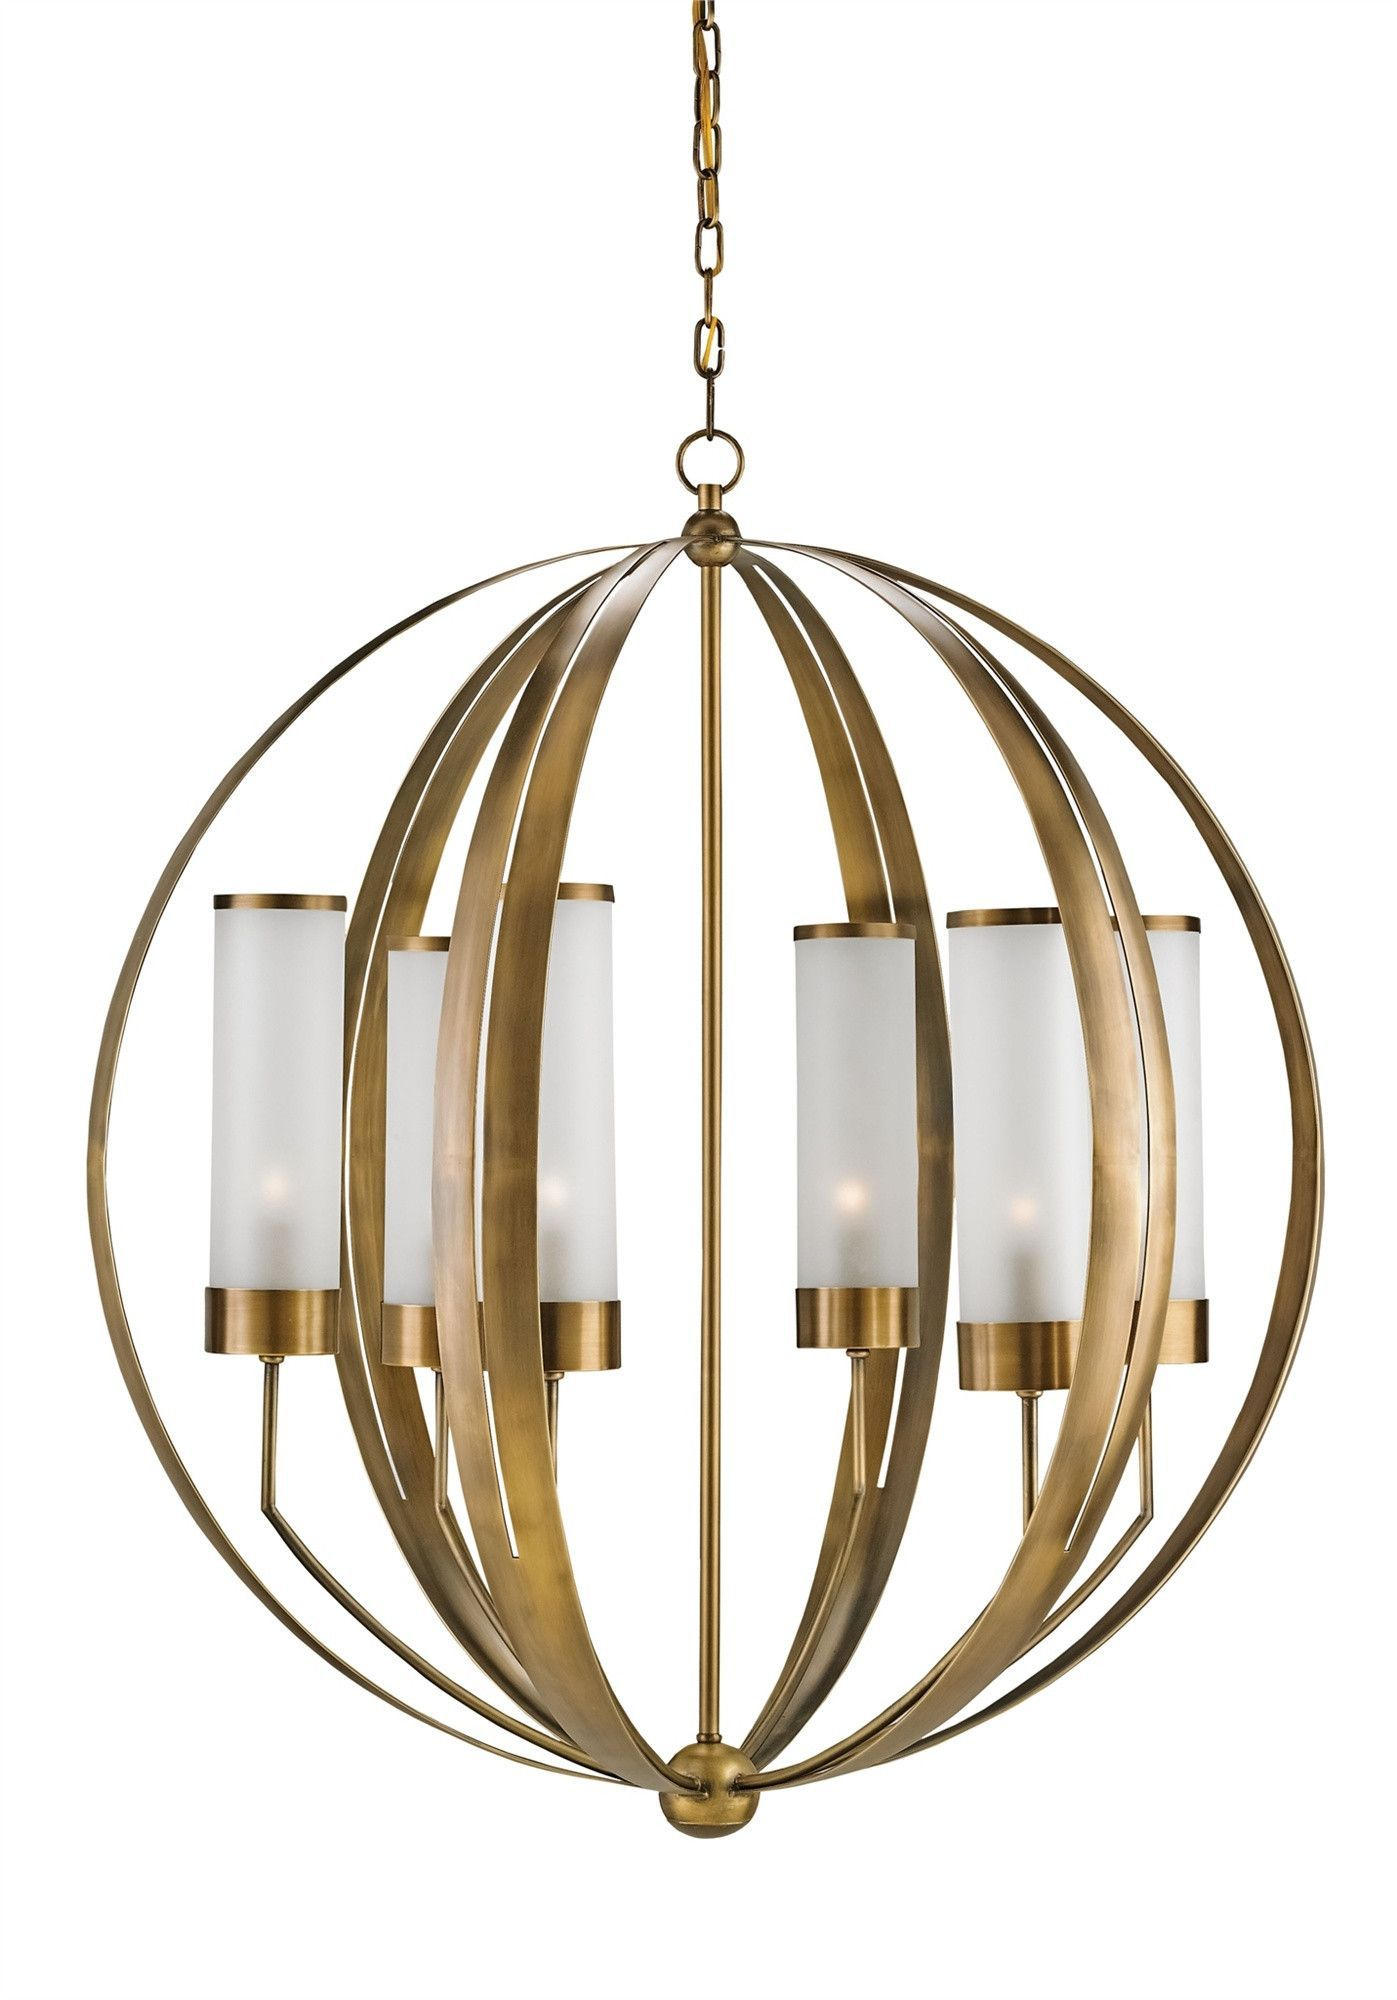 Agnes Orb Chandelier Design By Currey Amp Company From The Home Decor Discovery Community At Www